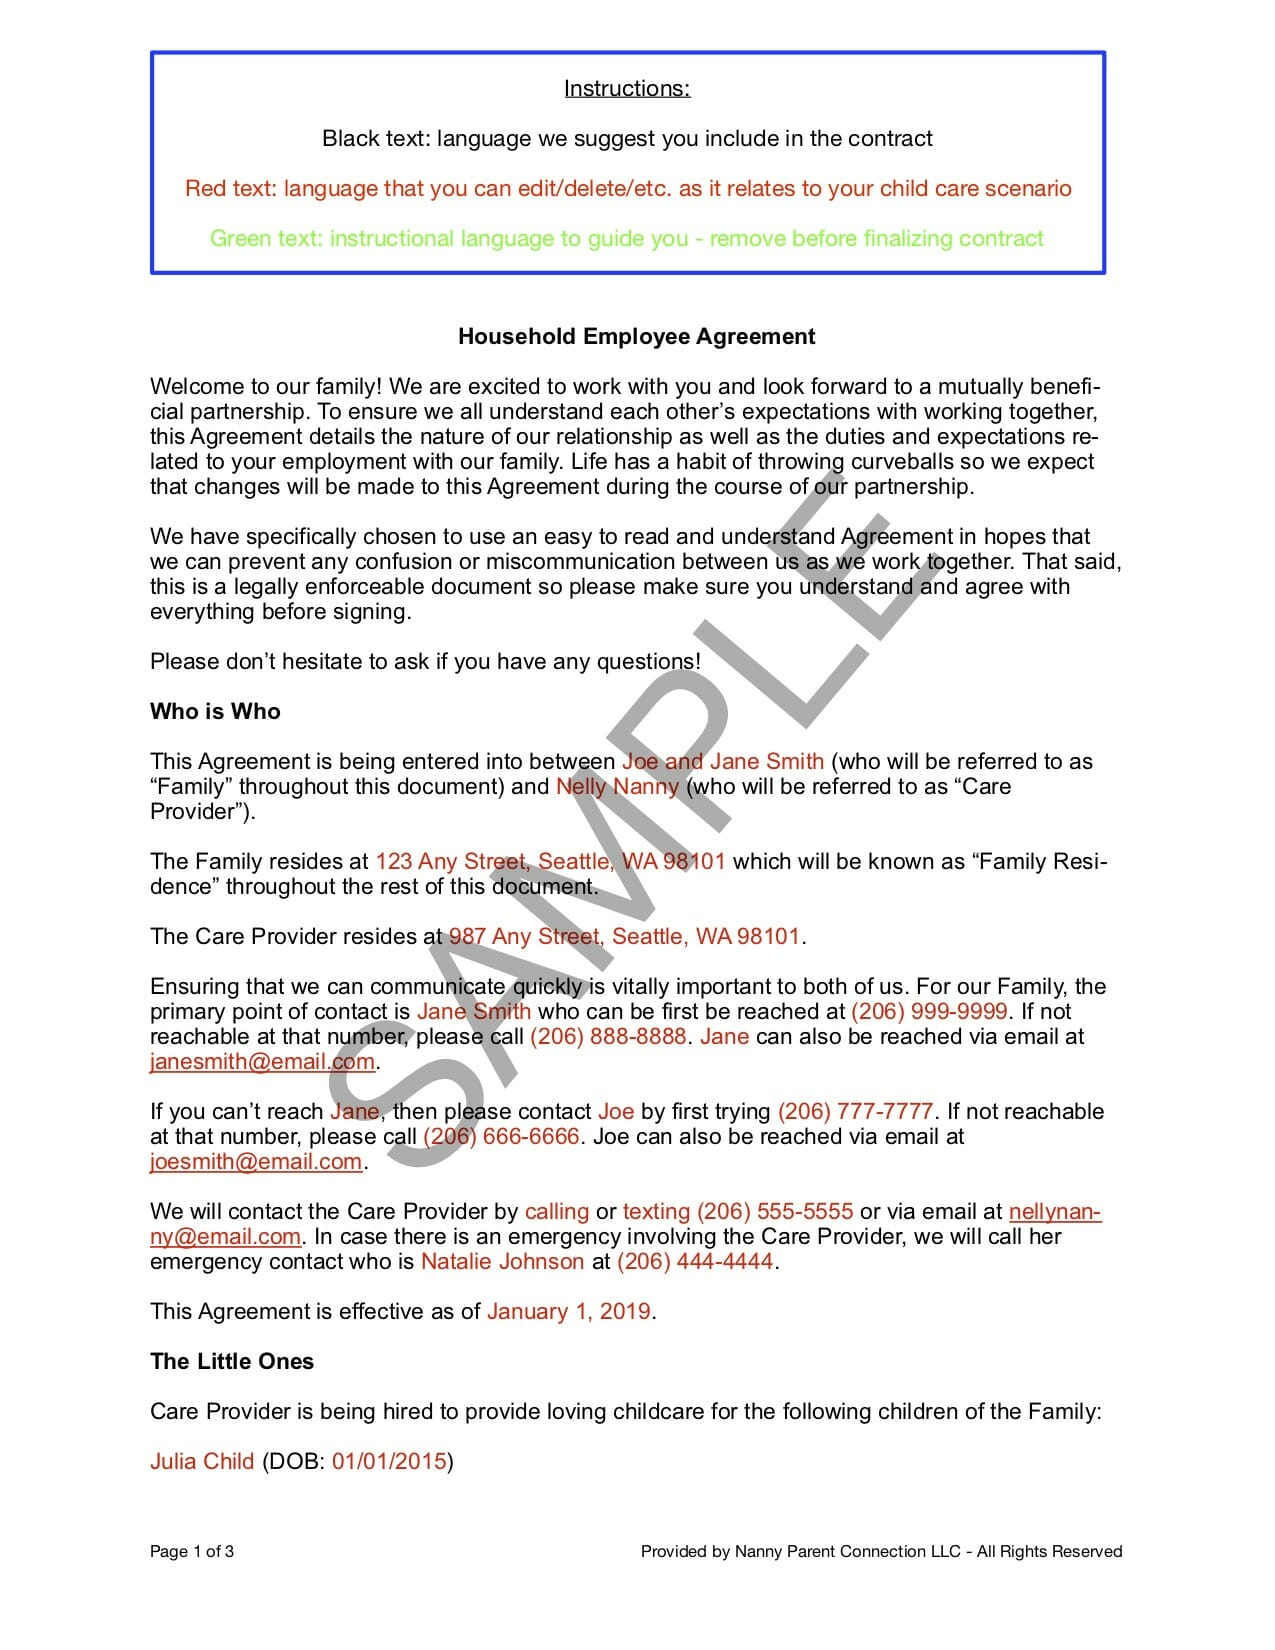 Household Employee Agreement Nanny Parent Connection